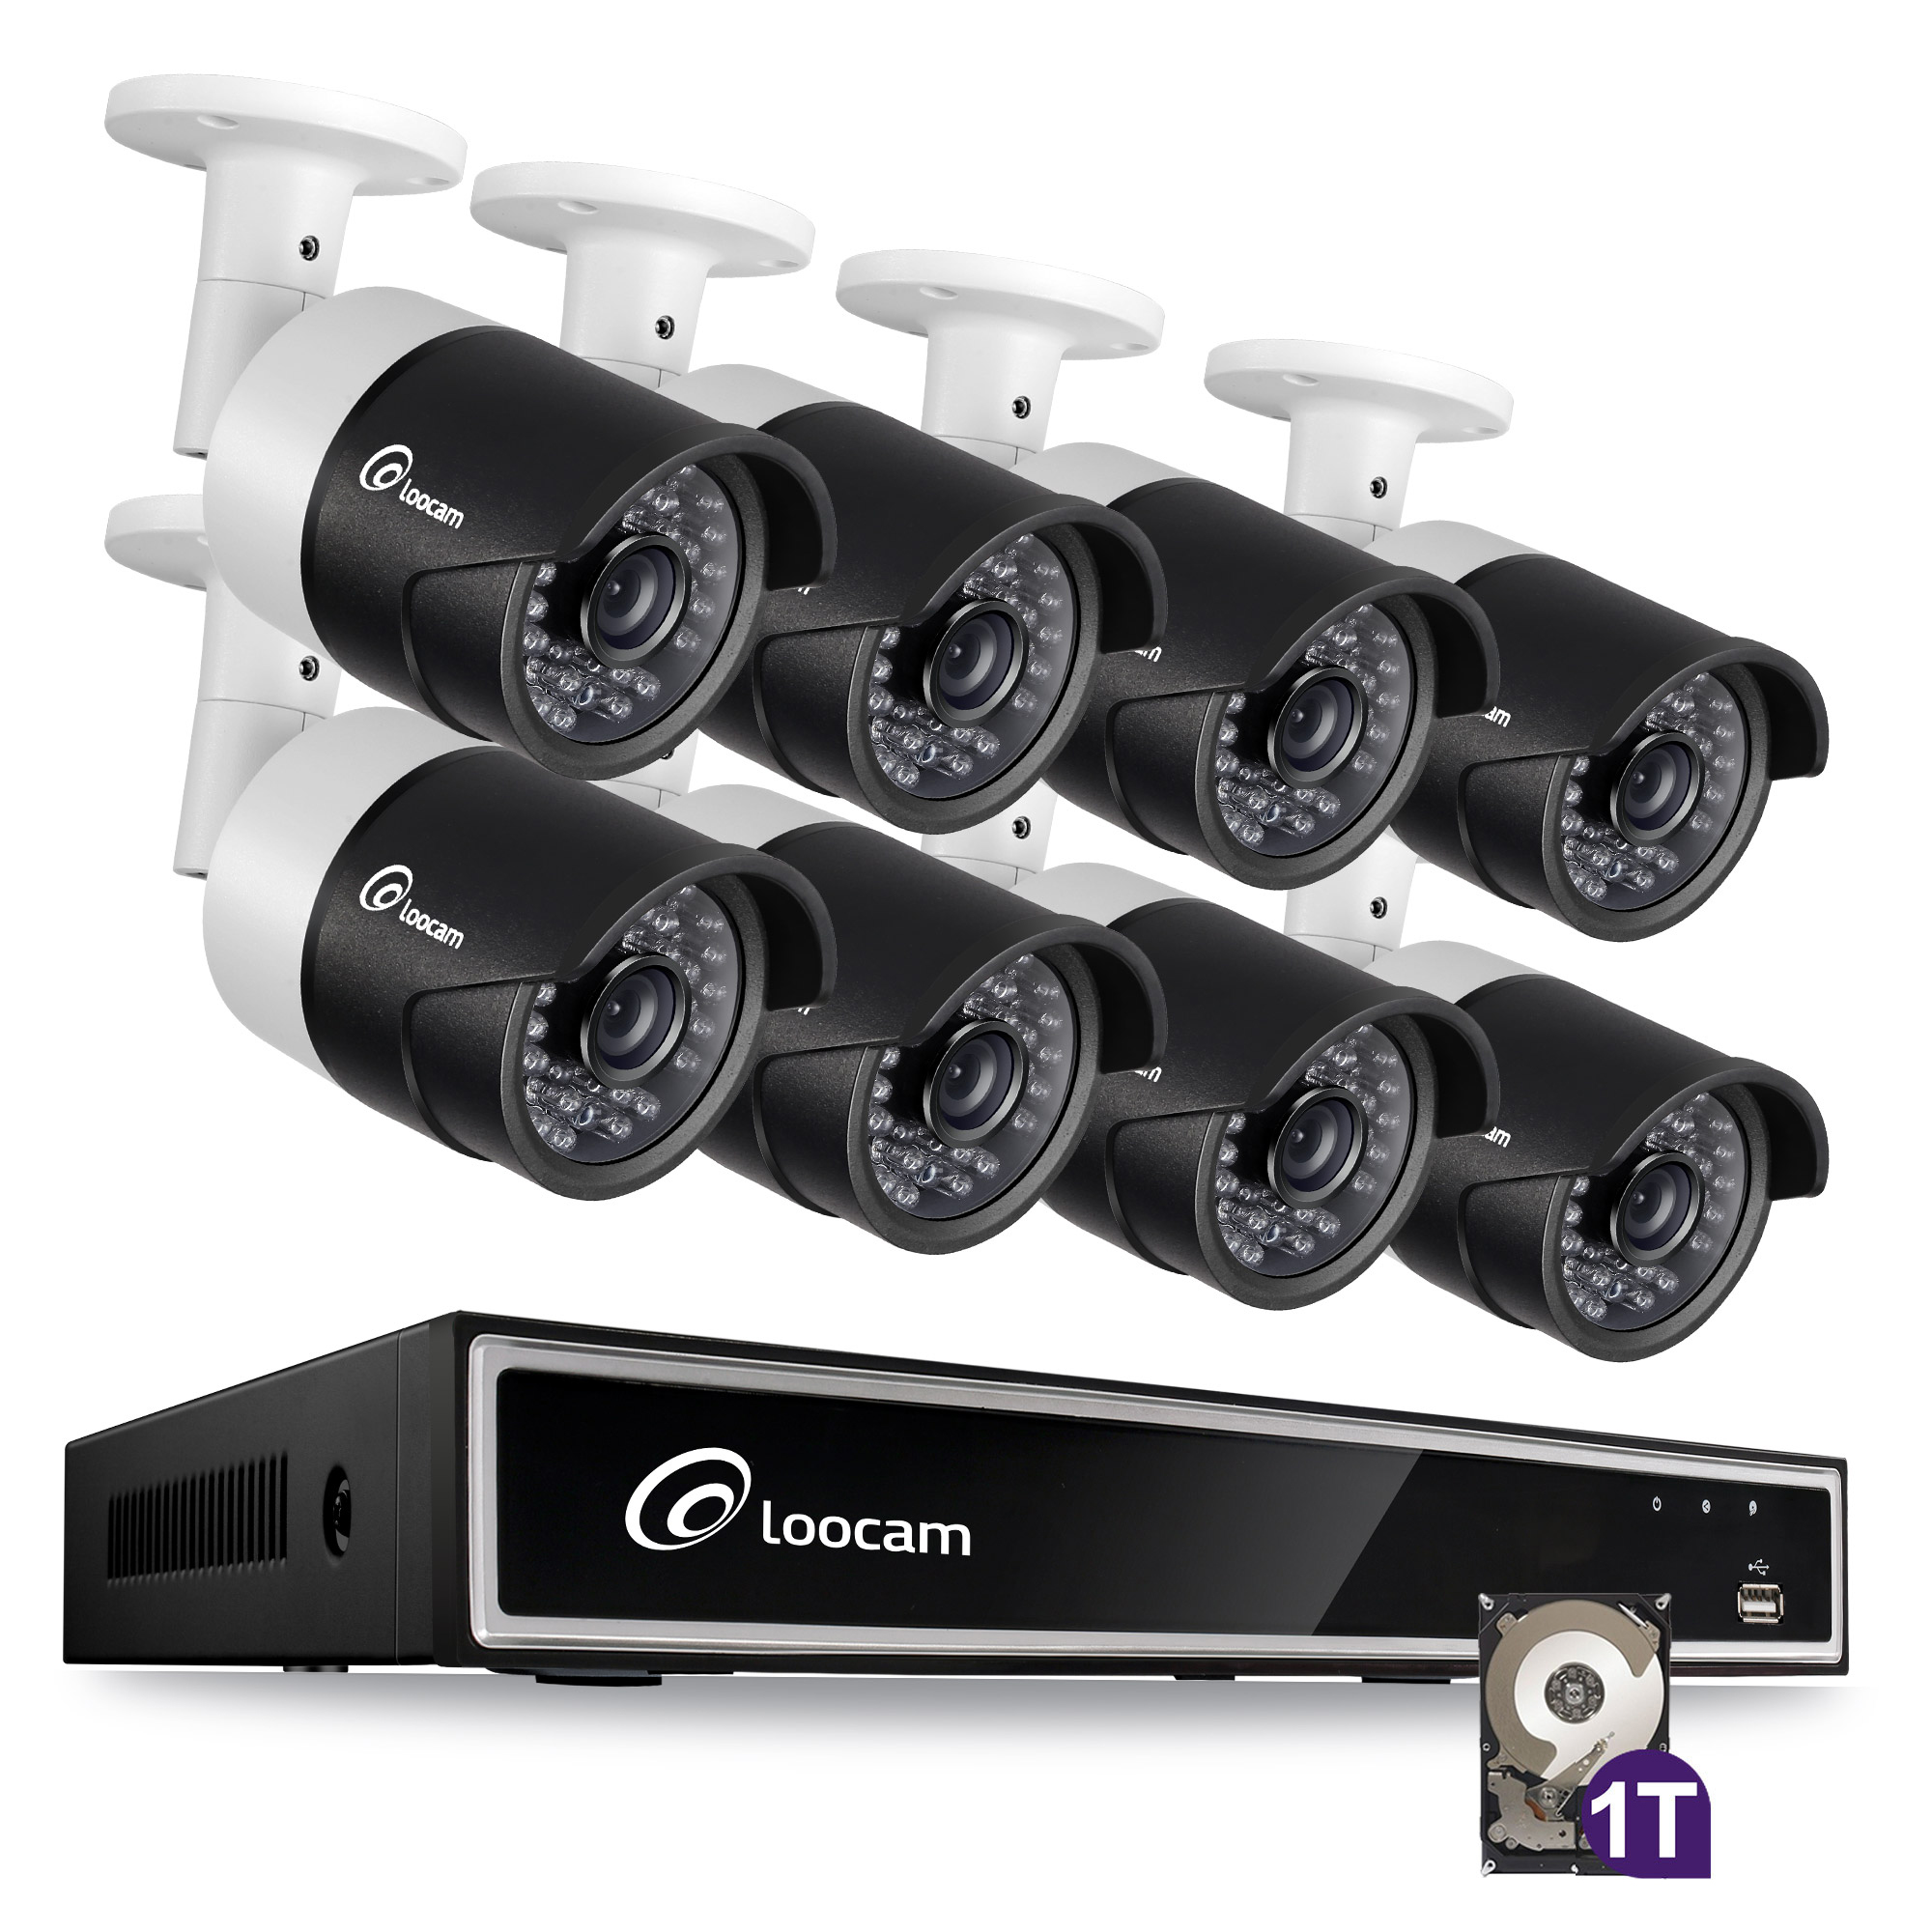 Loocam Security Camera System HD-TVI 720P 16-Channel 1TB Video DVR Surveillance Kit and 8PCS 1.0MP Indoor /Outdoor Weatherproof Bullet Camera 150FT Night Vision with IR Cut